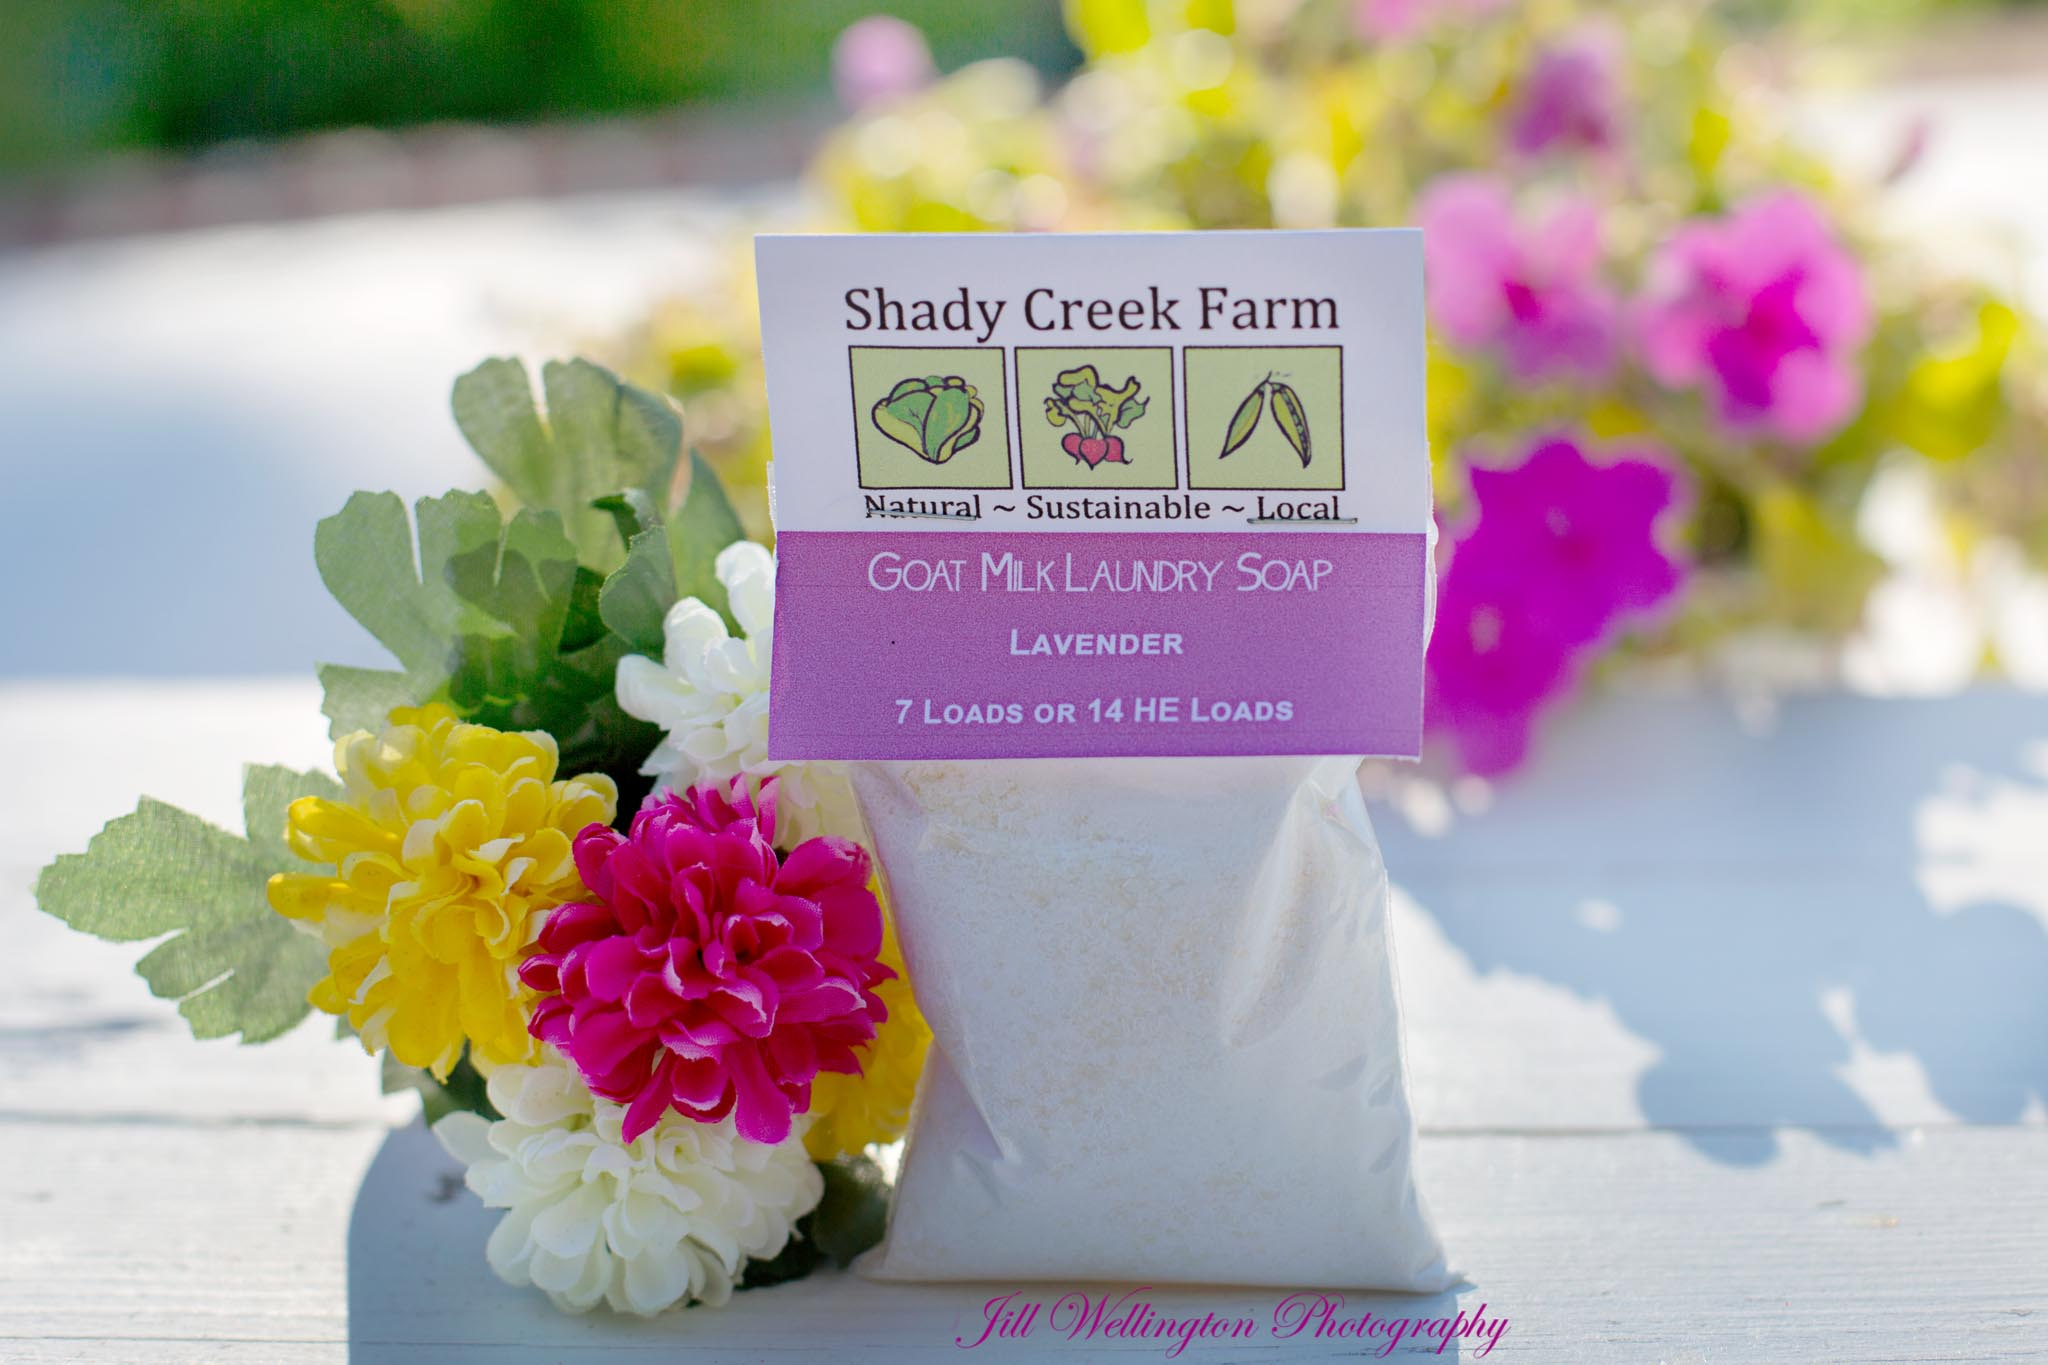 Shady Creek Farm Laundry Soap